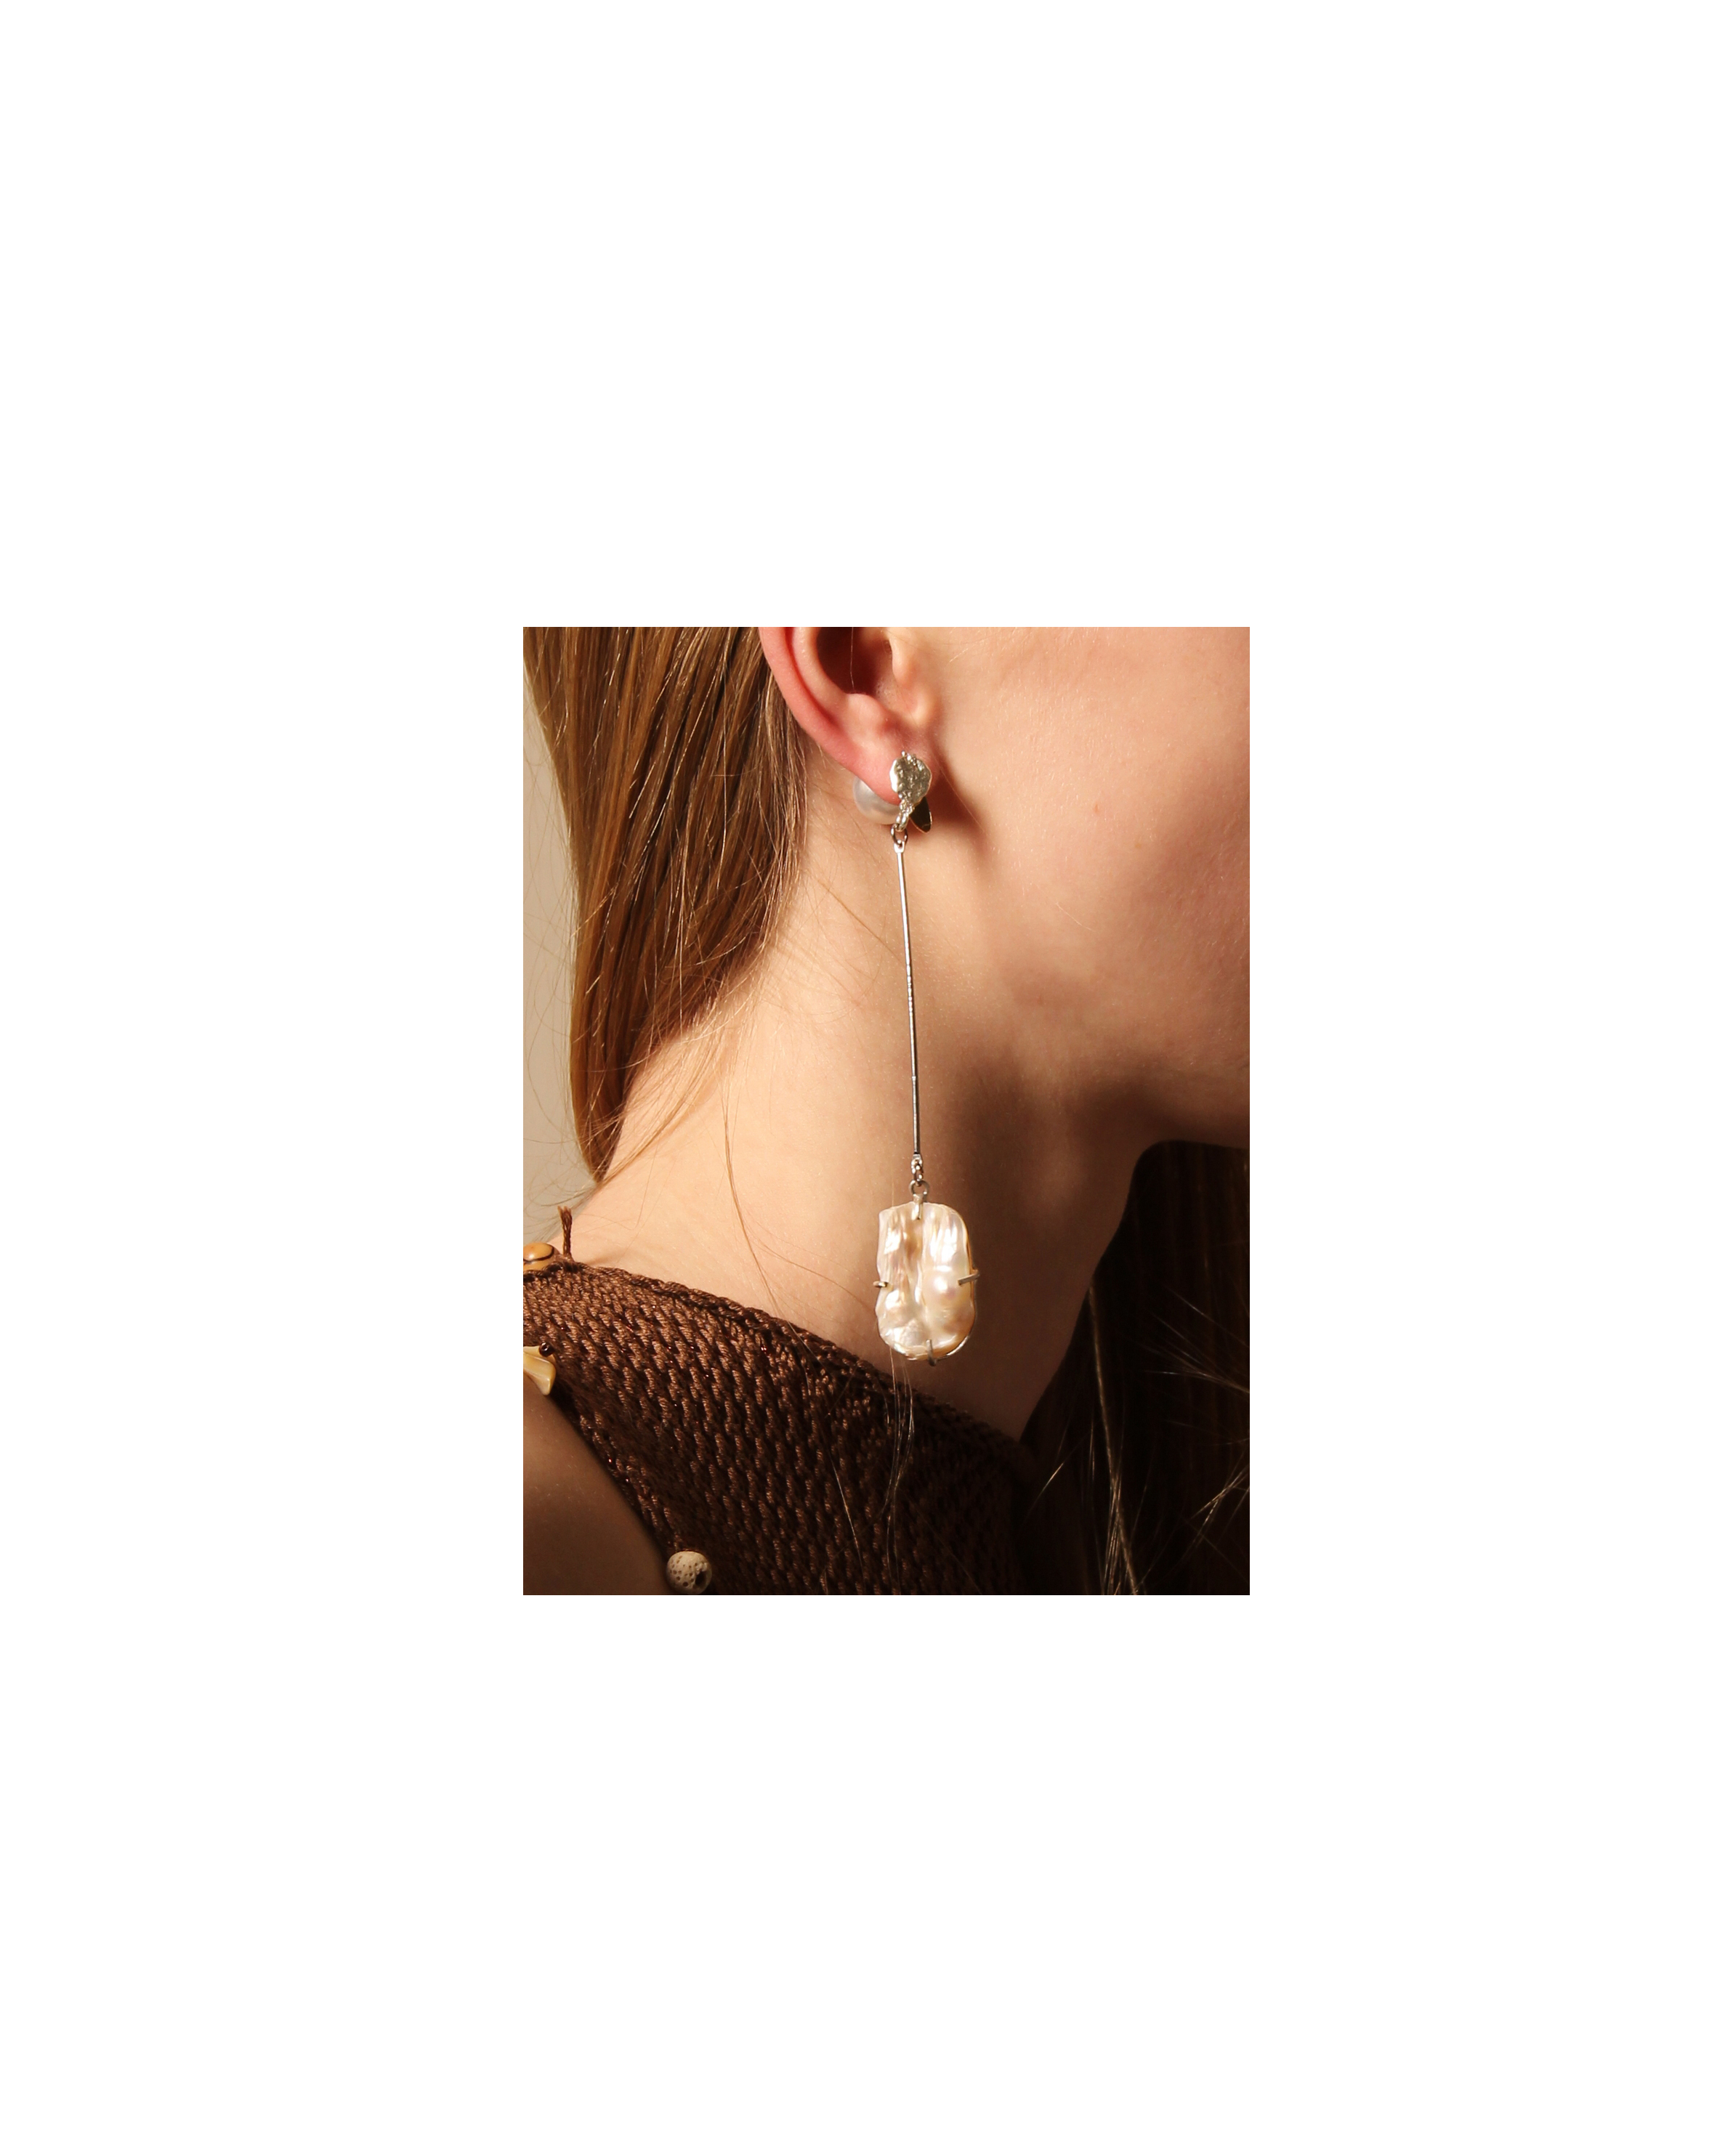 wedding earrings peet dullaert